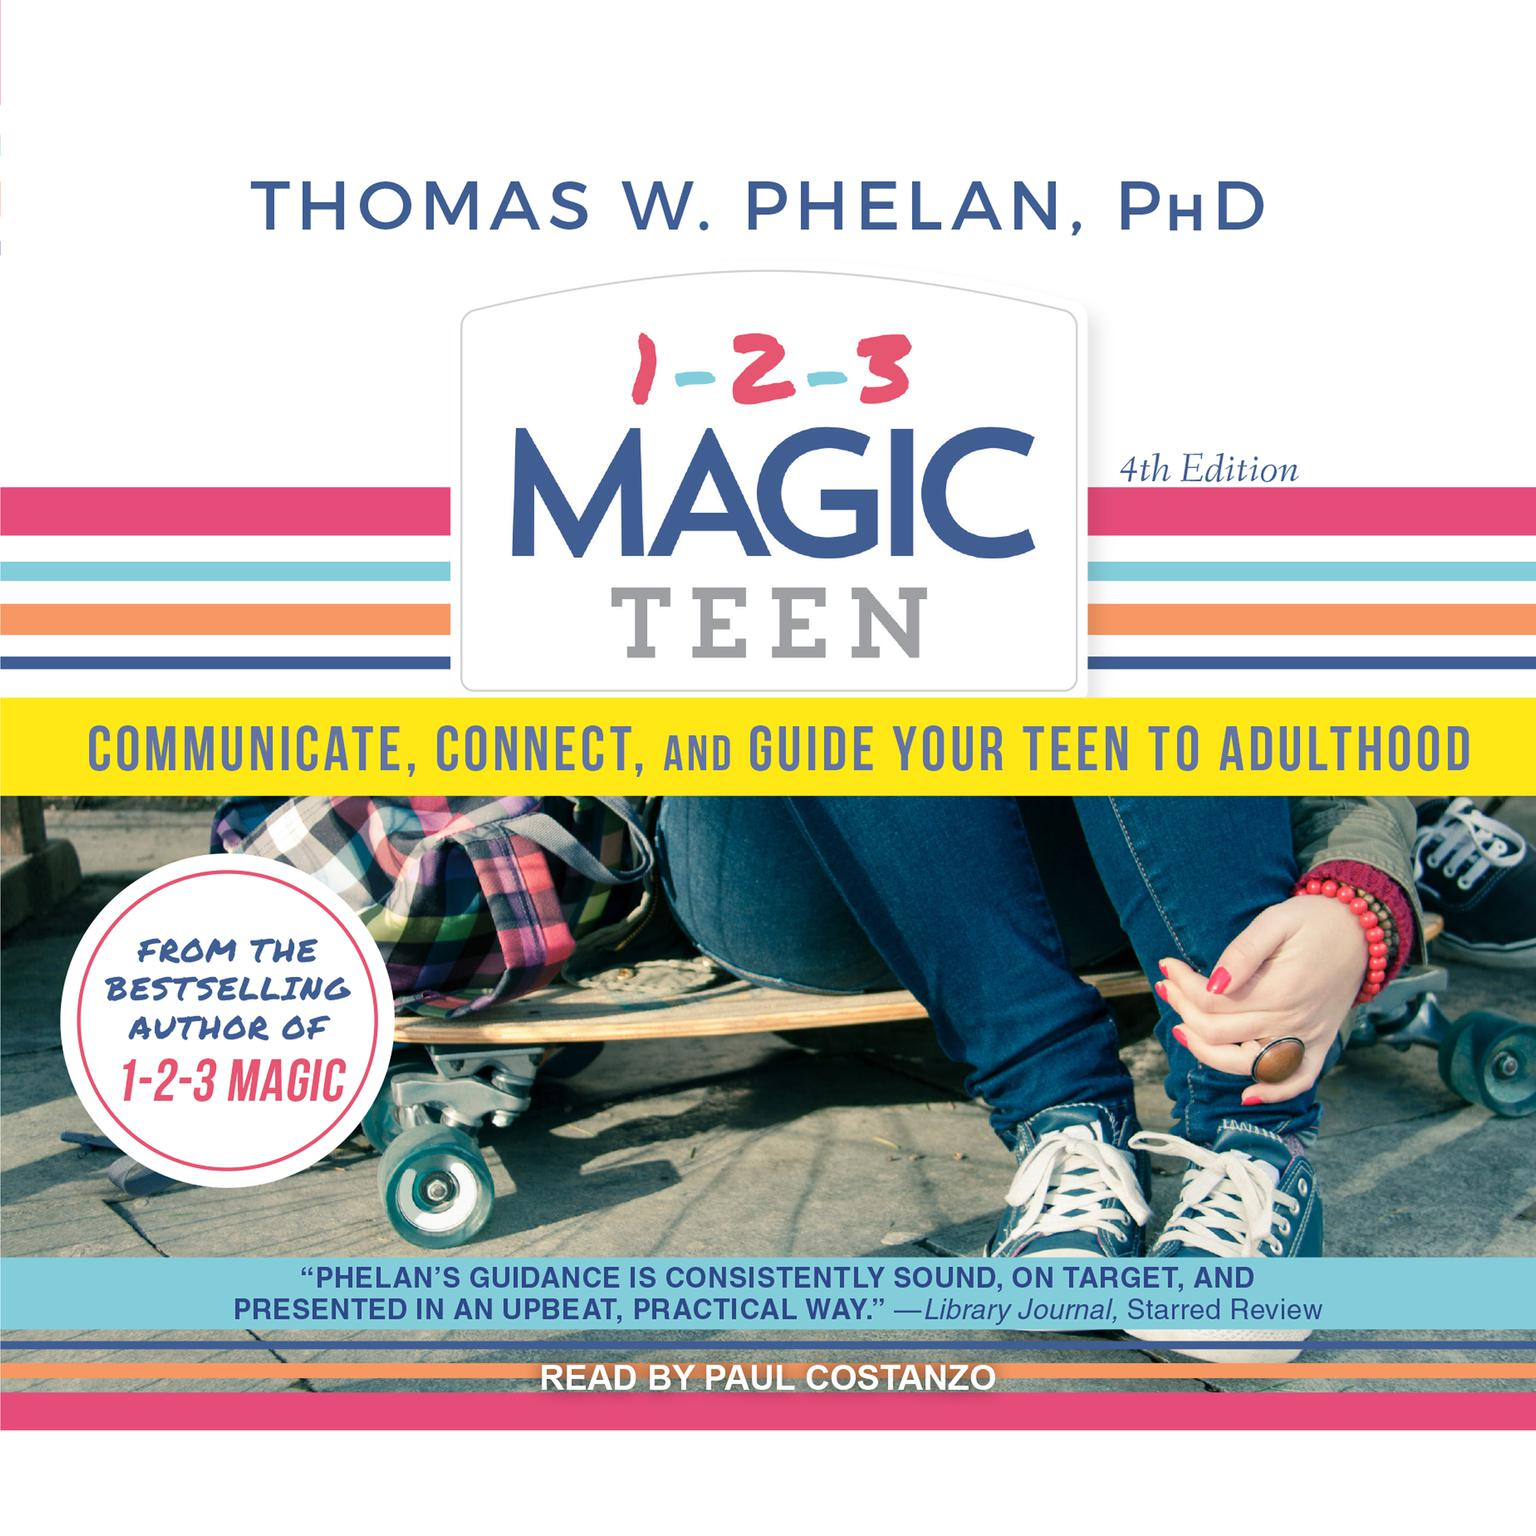 1-2-3 Magic Teen: Communicate, Connect, and Guide Your Teen to Adulthood Audiobook, by Thomas W. Phelan